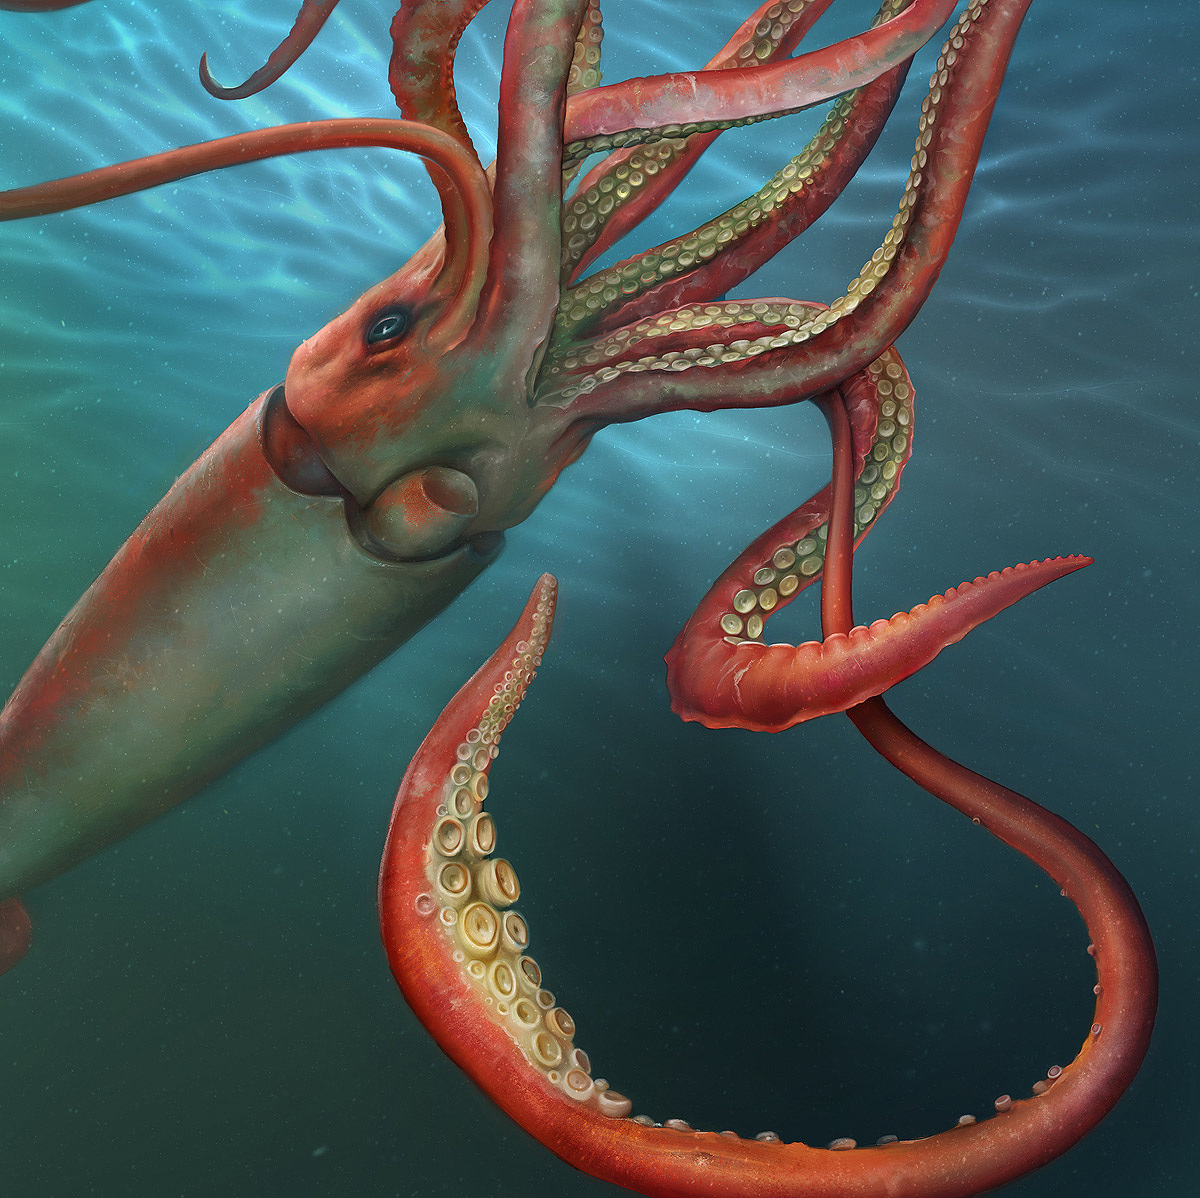 Giant Squid - The Art of Eldar Zakirov